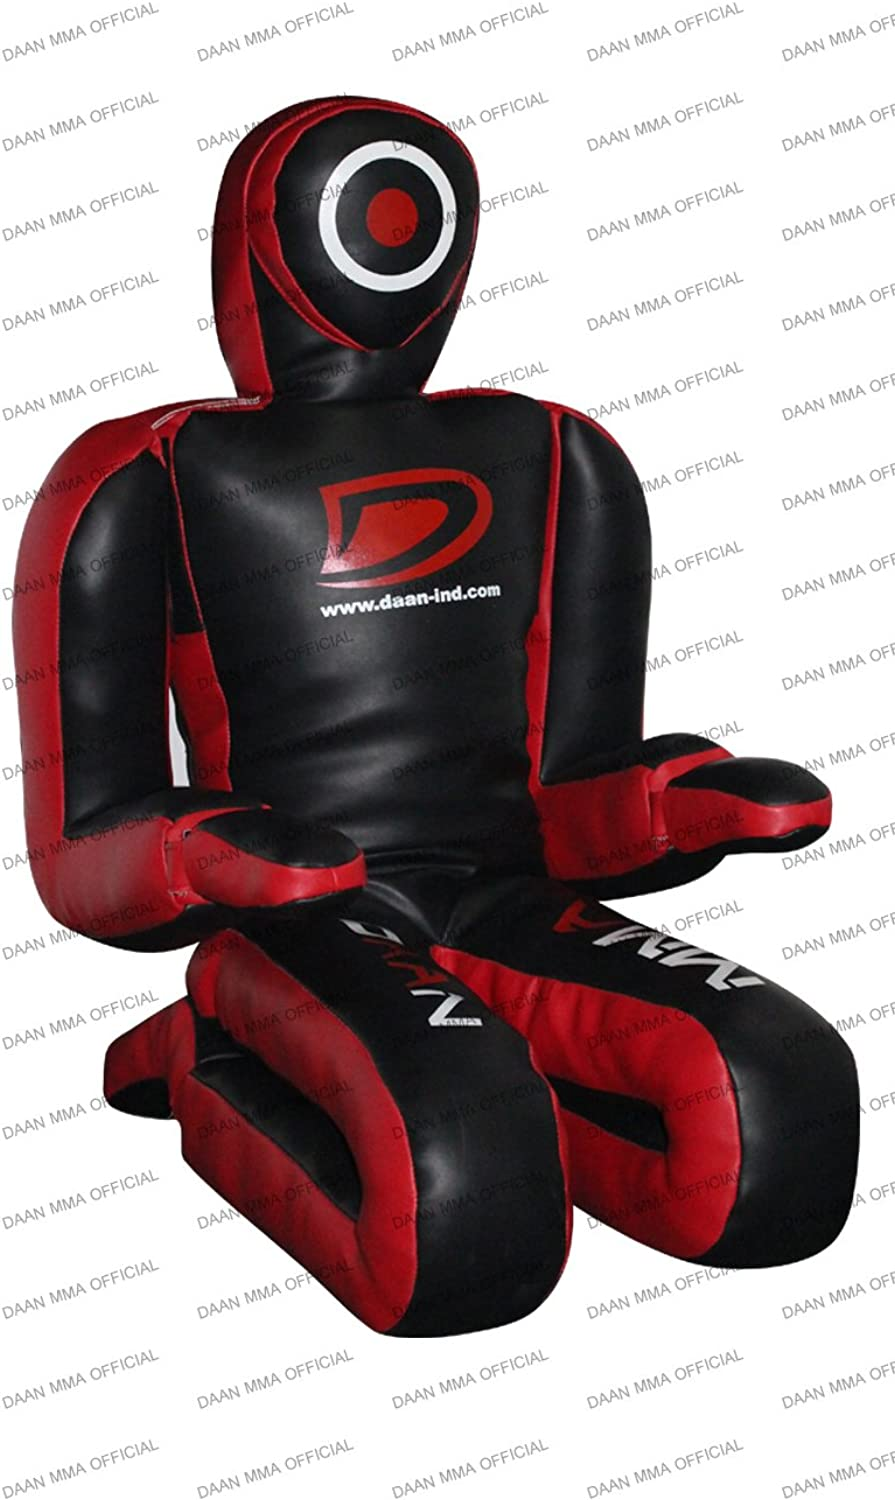 BJJ MMA Grappling Dummy 70  (with Hands and feet Ideal for Detailed submissions Like Ankle Locks, Foot Locks, Heel Hooks, Leg Locks, Wrist Locks)